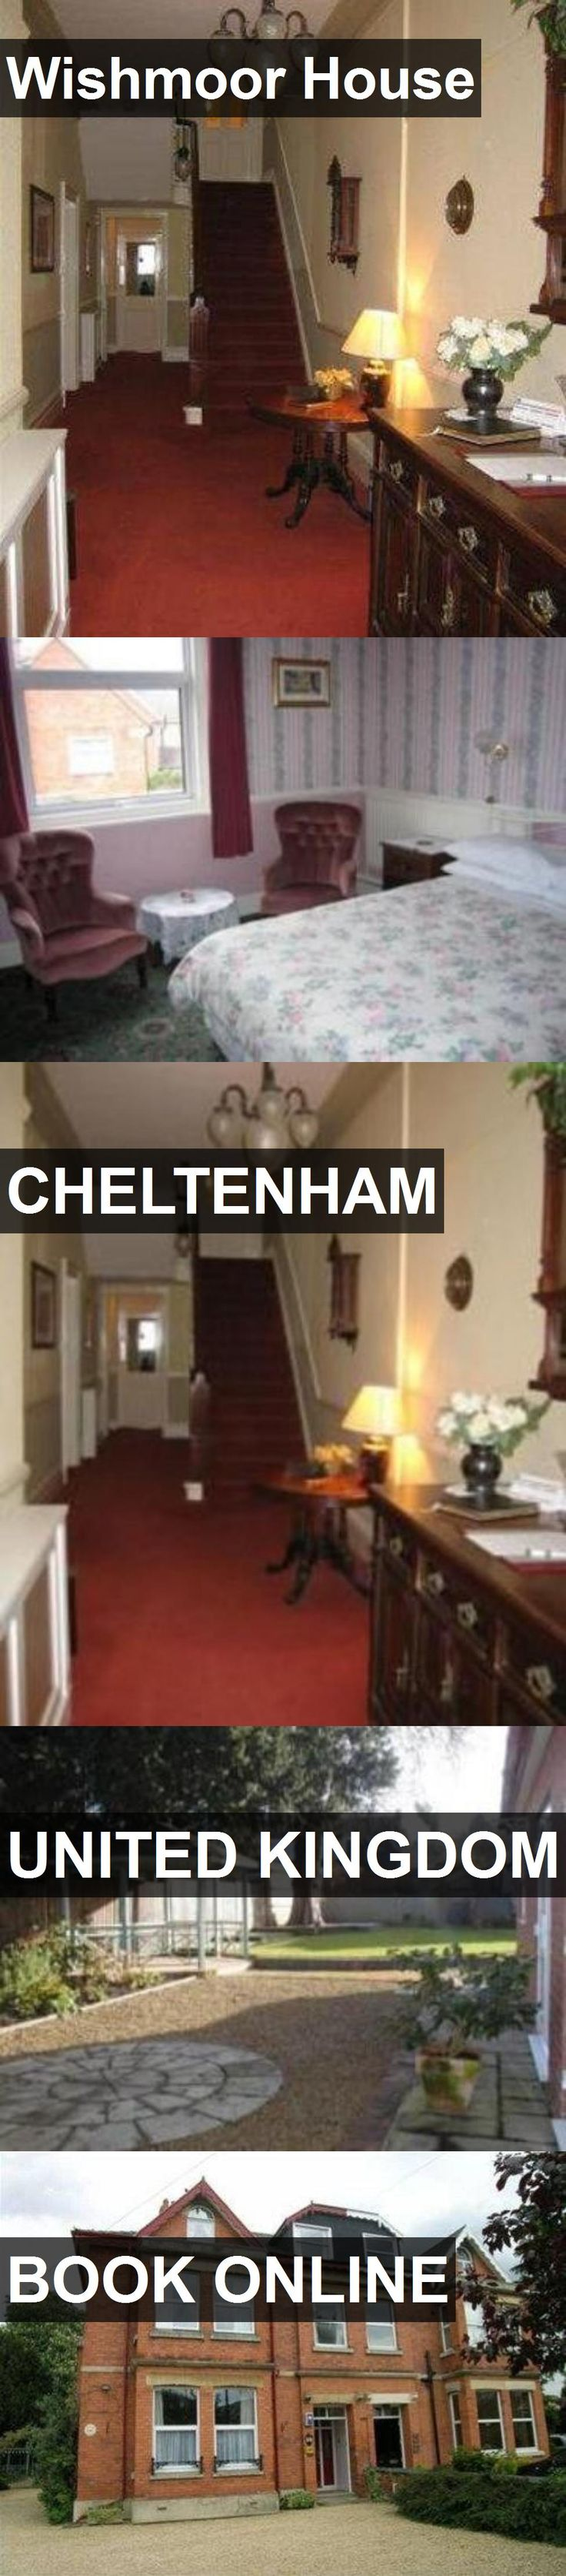 Hotel Wishmoor House in Cheltenham, United Kingdom. For more information, photos, reviews and best prices please follow the link. #UnitedKingdom #Cheltenham #travel #vacation #hotel